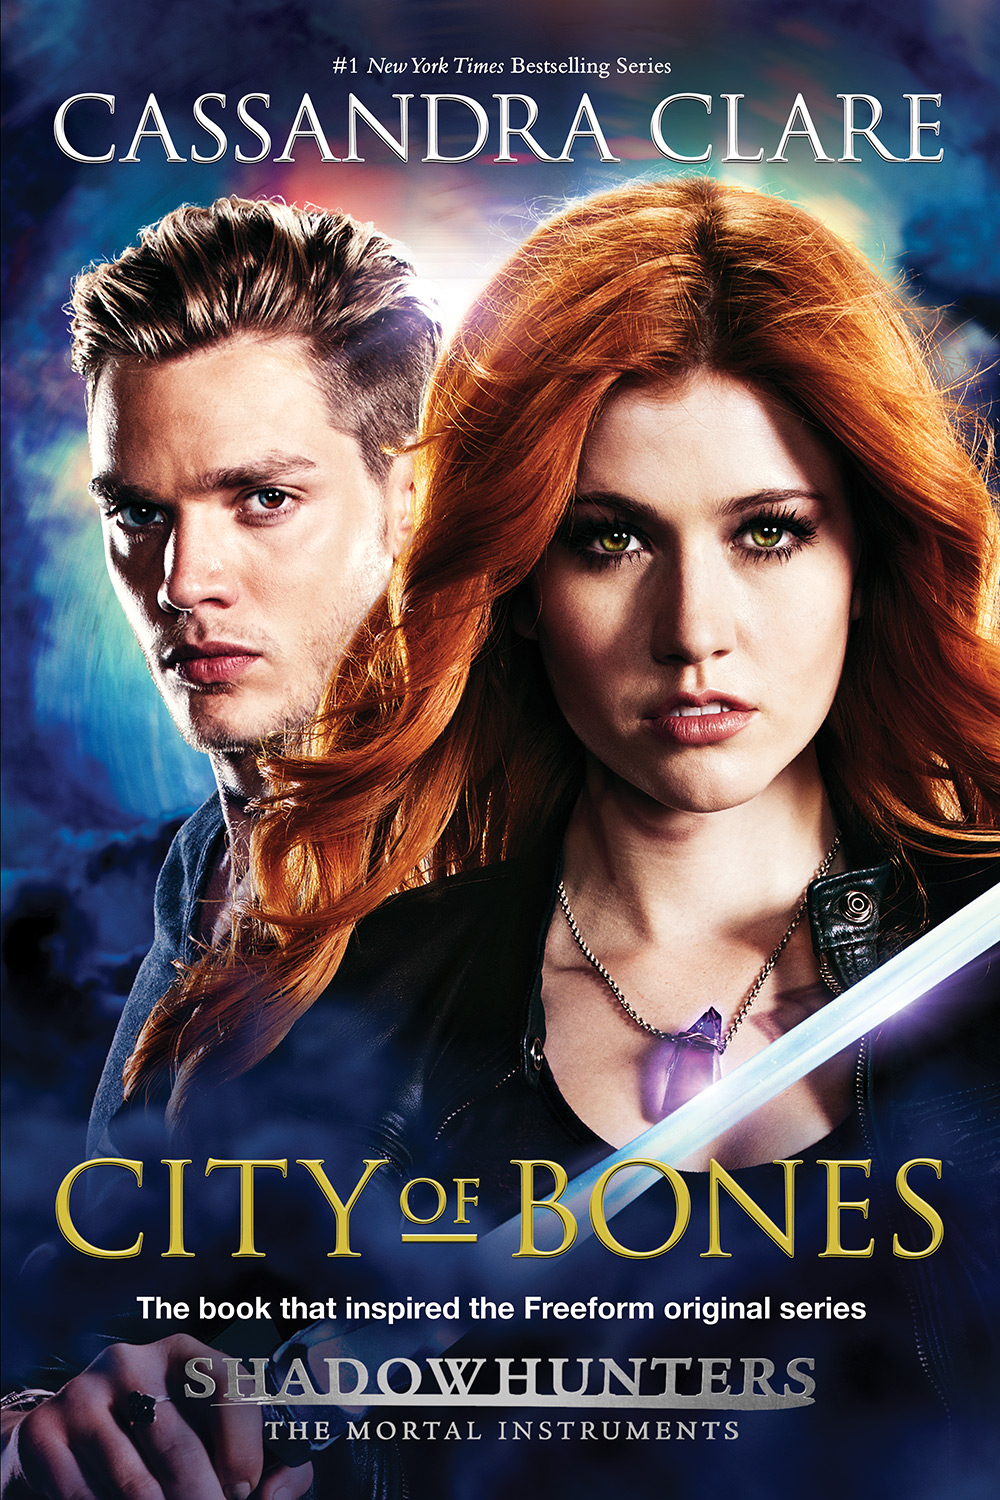 Shadowhunters - [EXCLUSIVE REVEAL] Brand New City of Bones Book Cover! - 1003